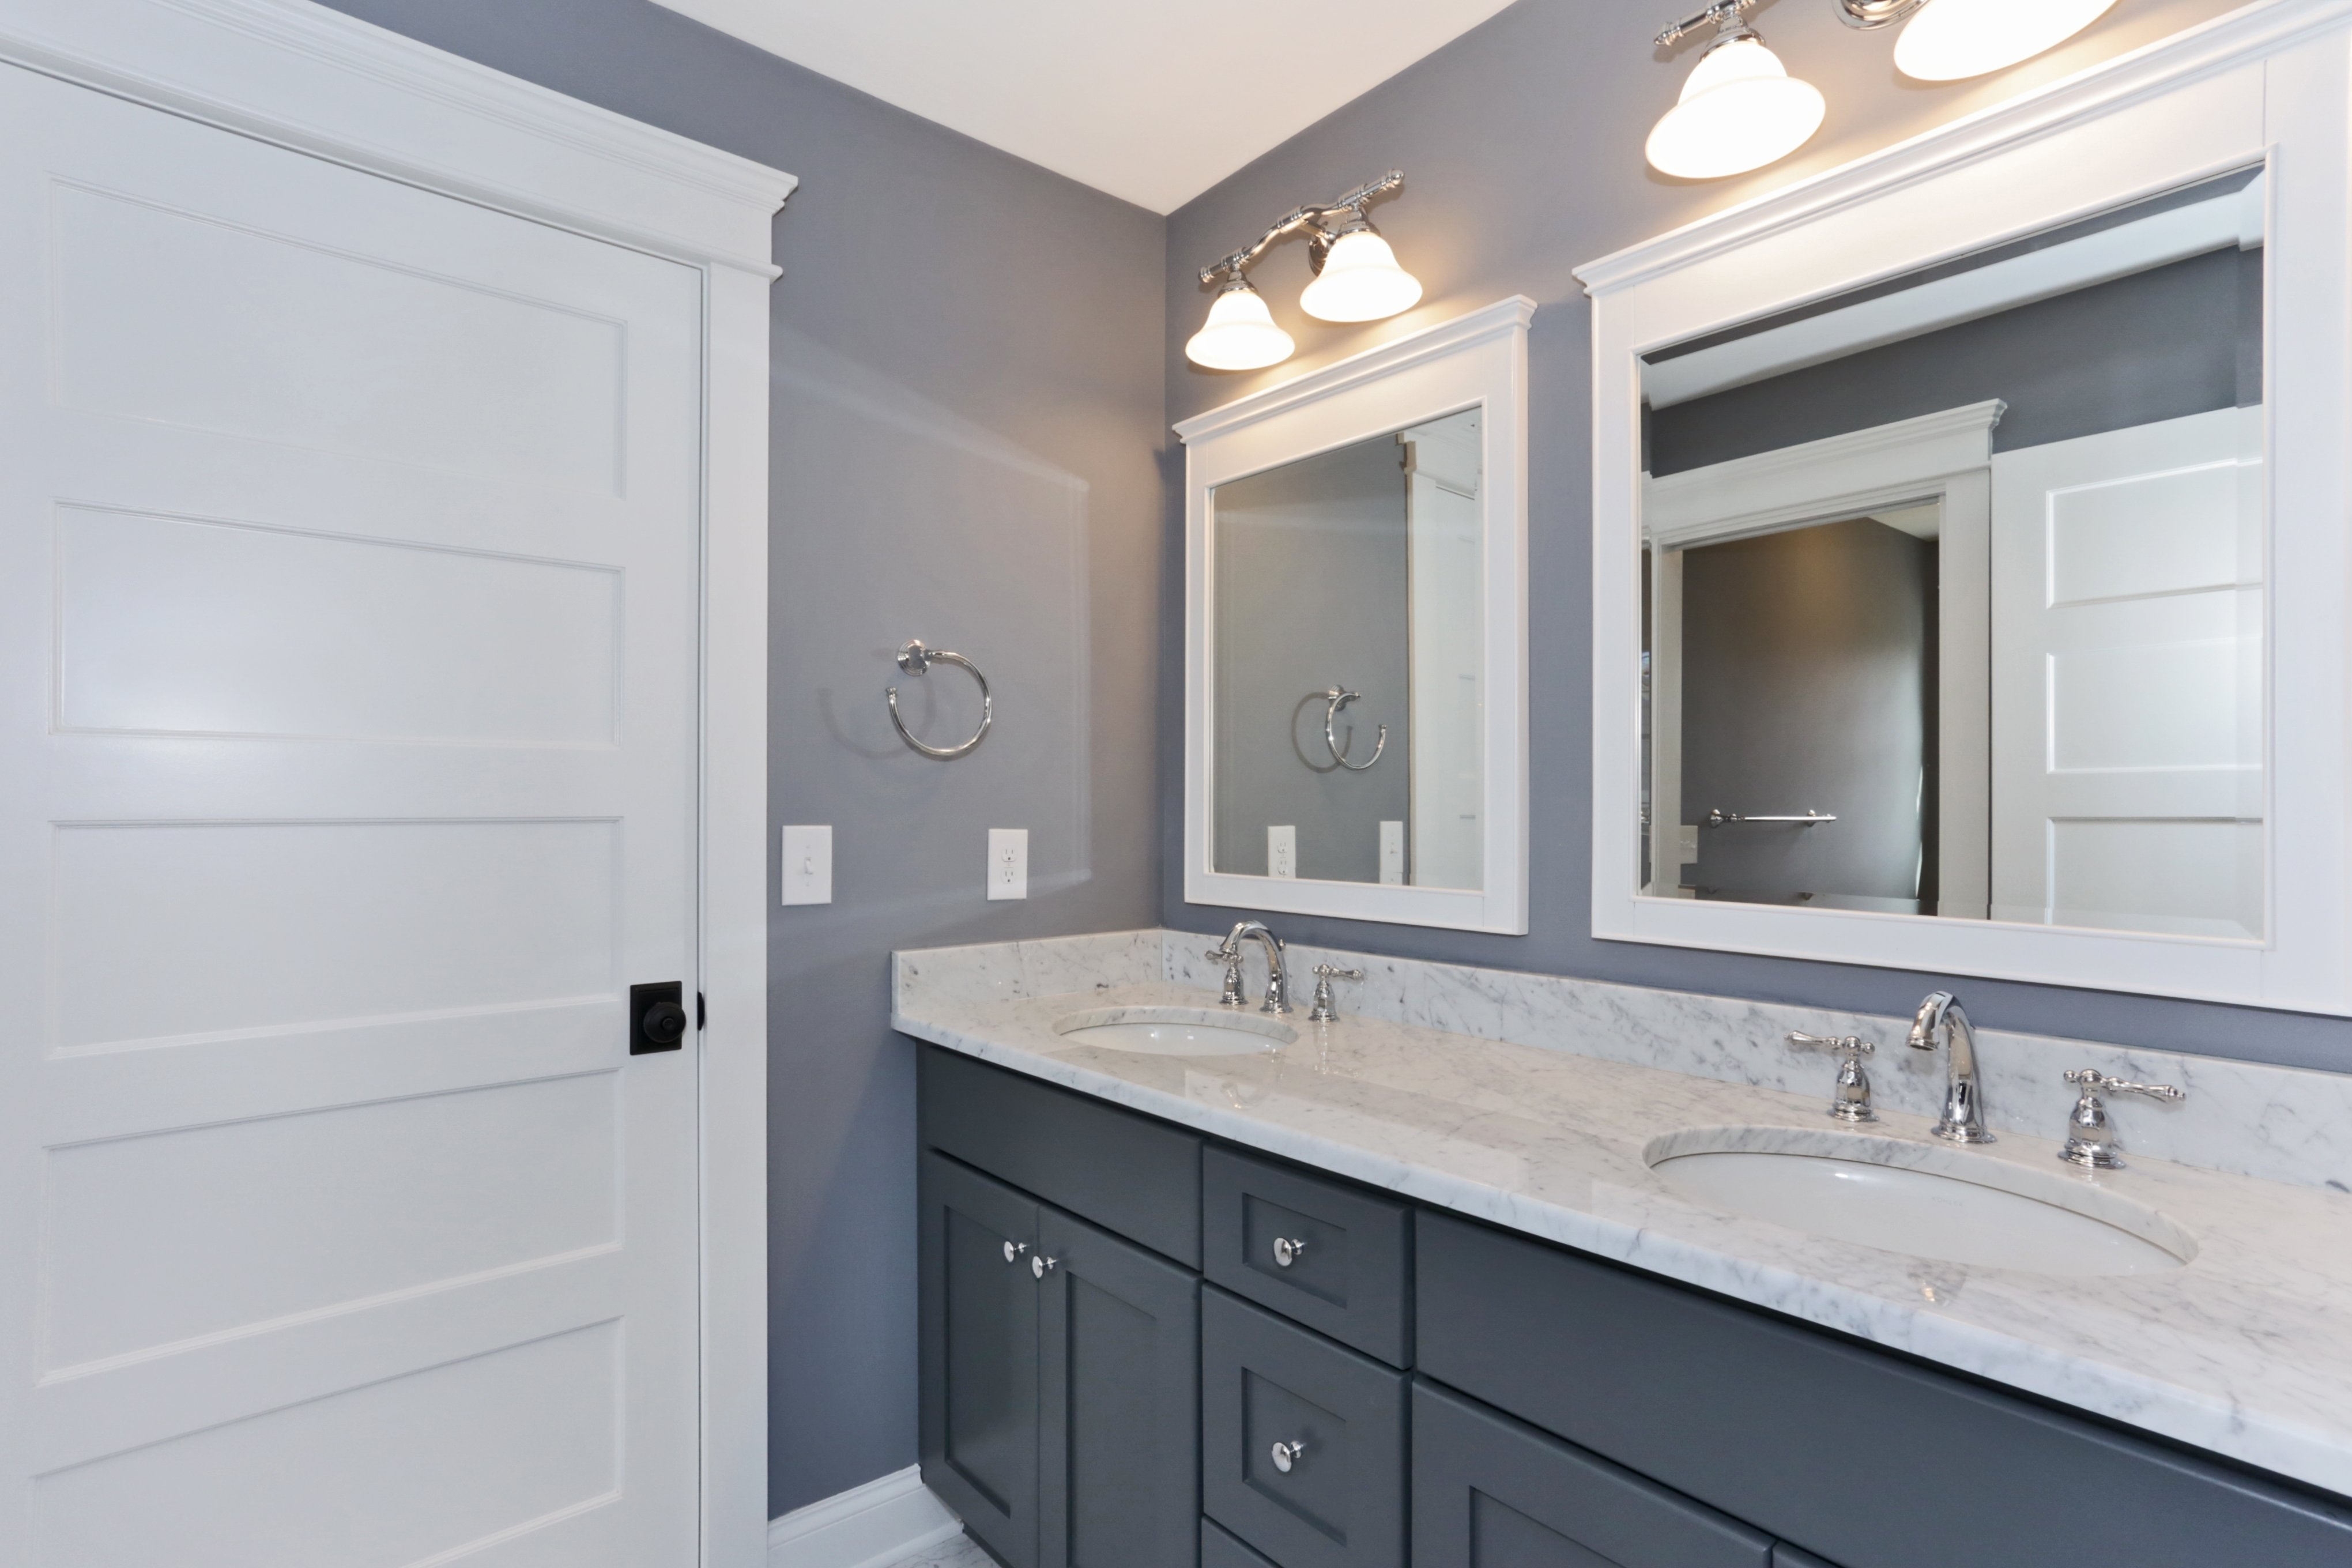 10 Most Recommended Jack And Jill Bathroom Ideas jack and jill bathroom ideas bathroom design ideas kohler single